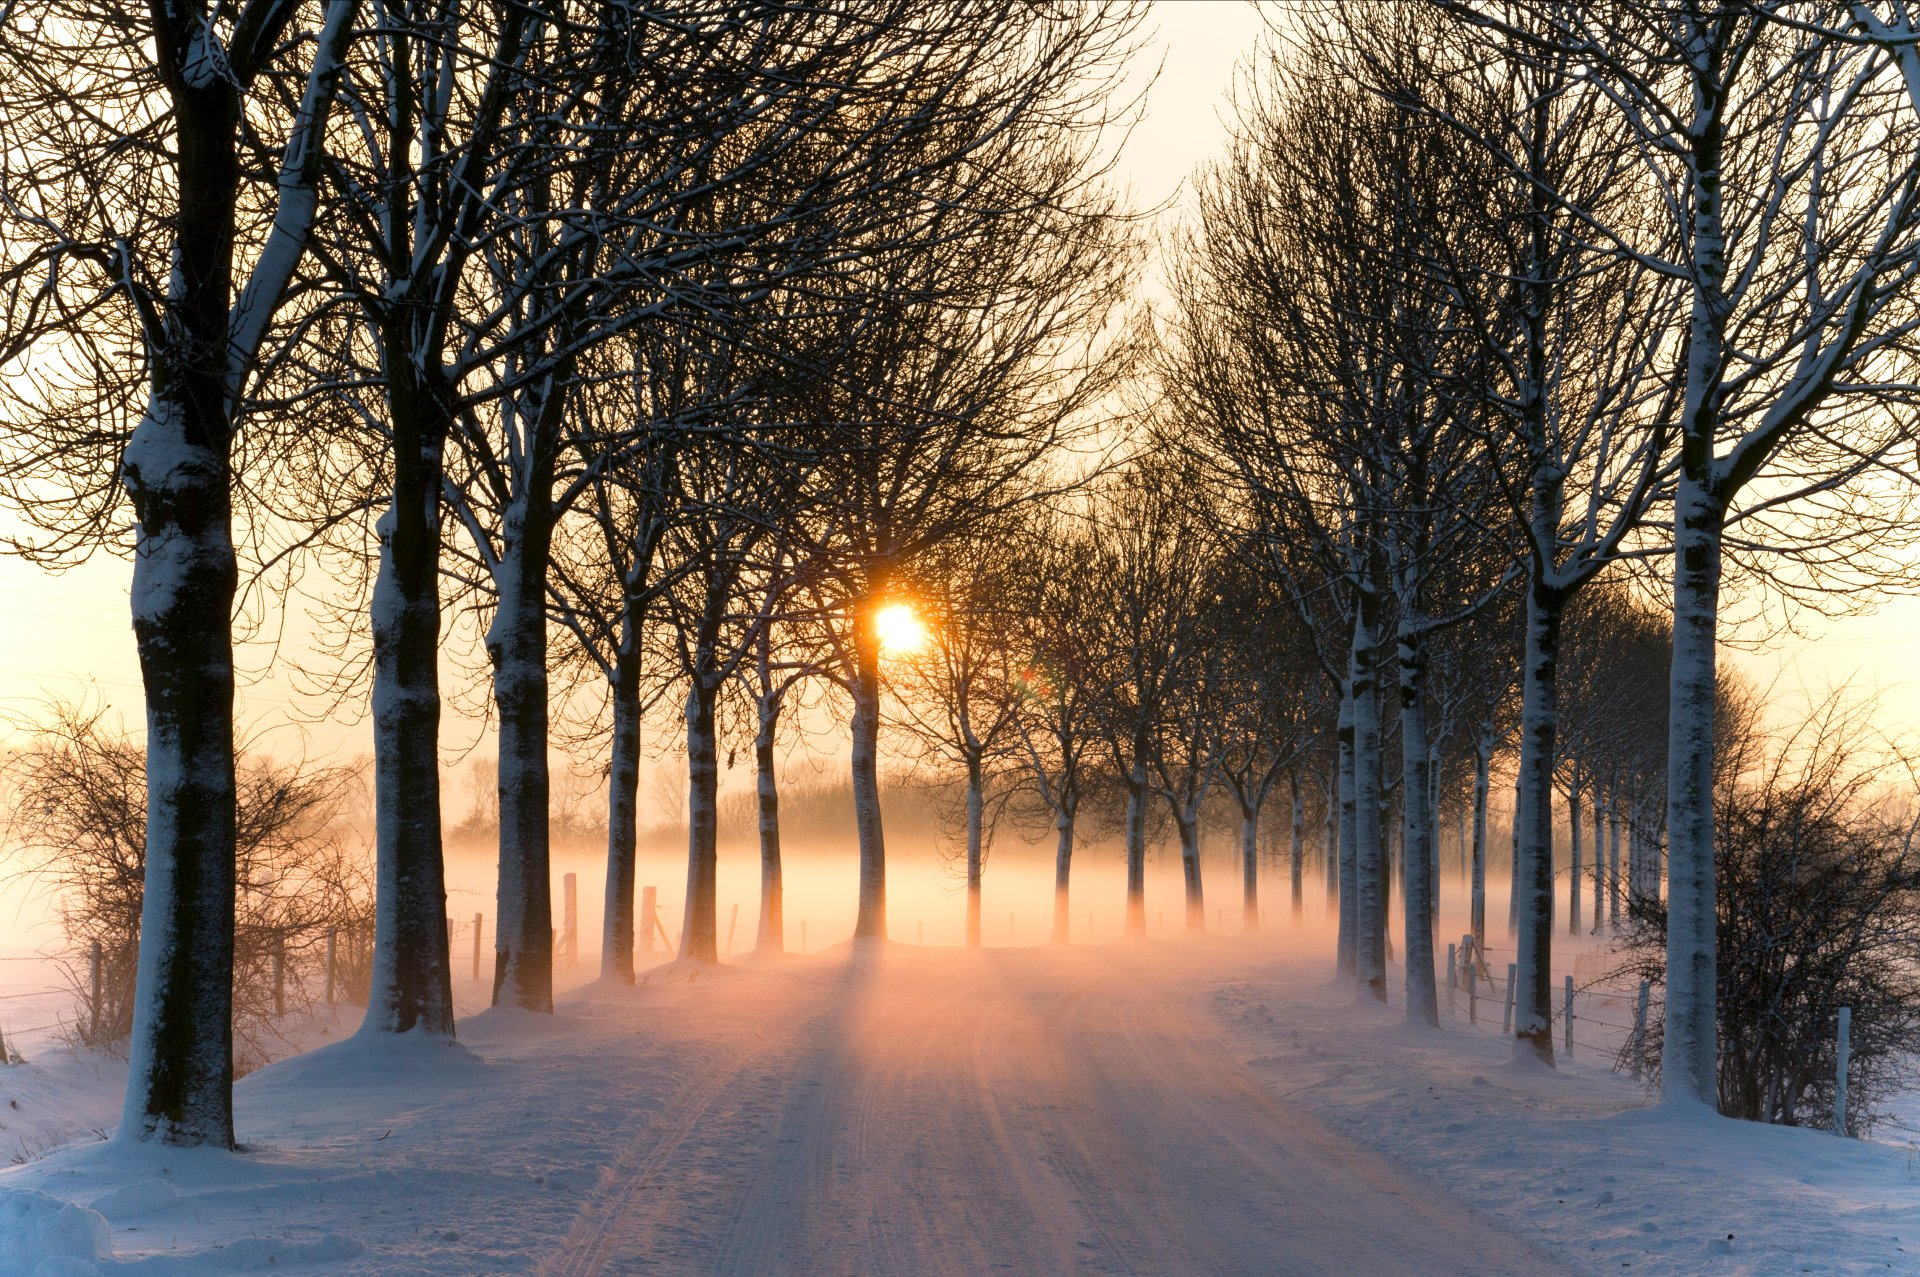 Man Made - Road  Winter Snow Tree Fog Sun Sunset Wallpaper